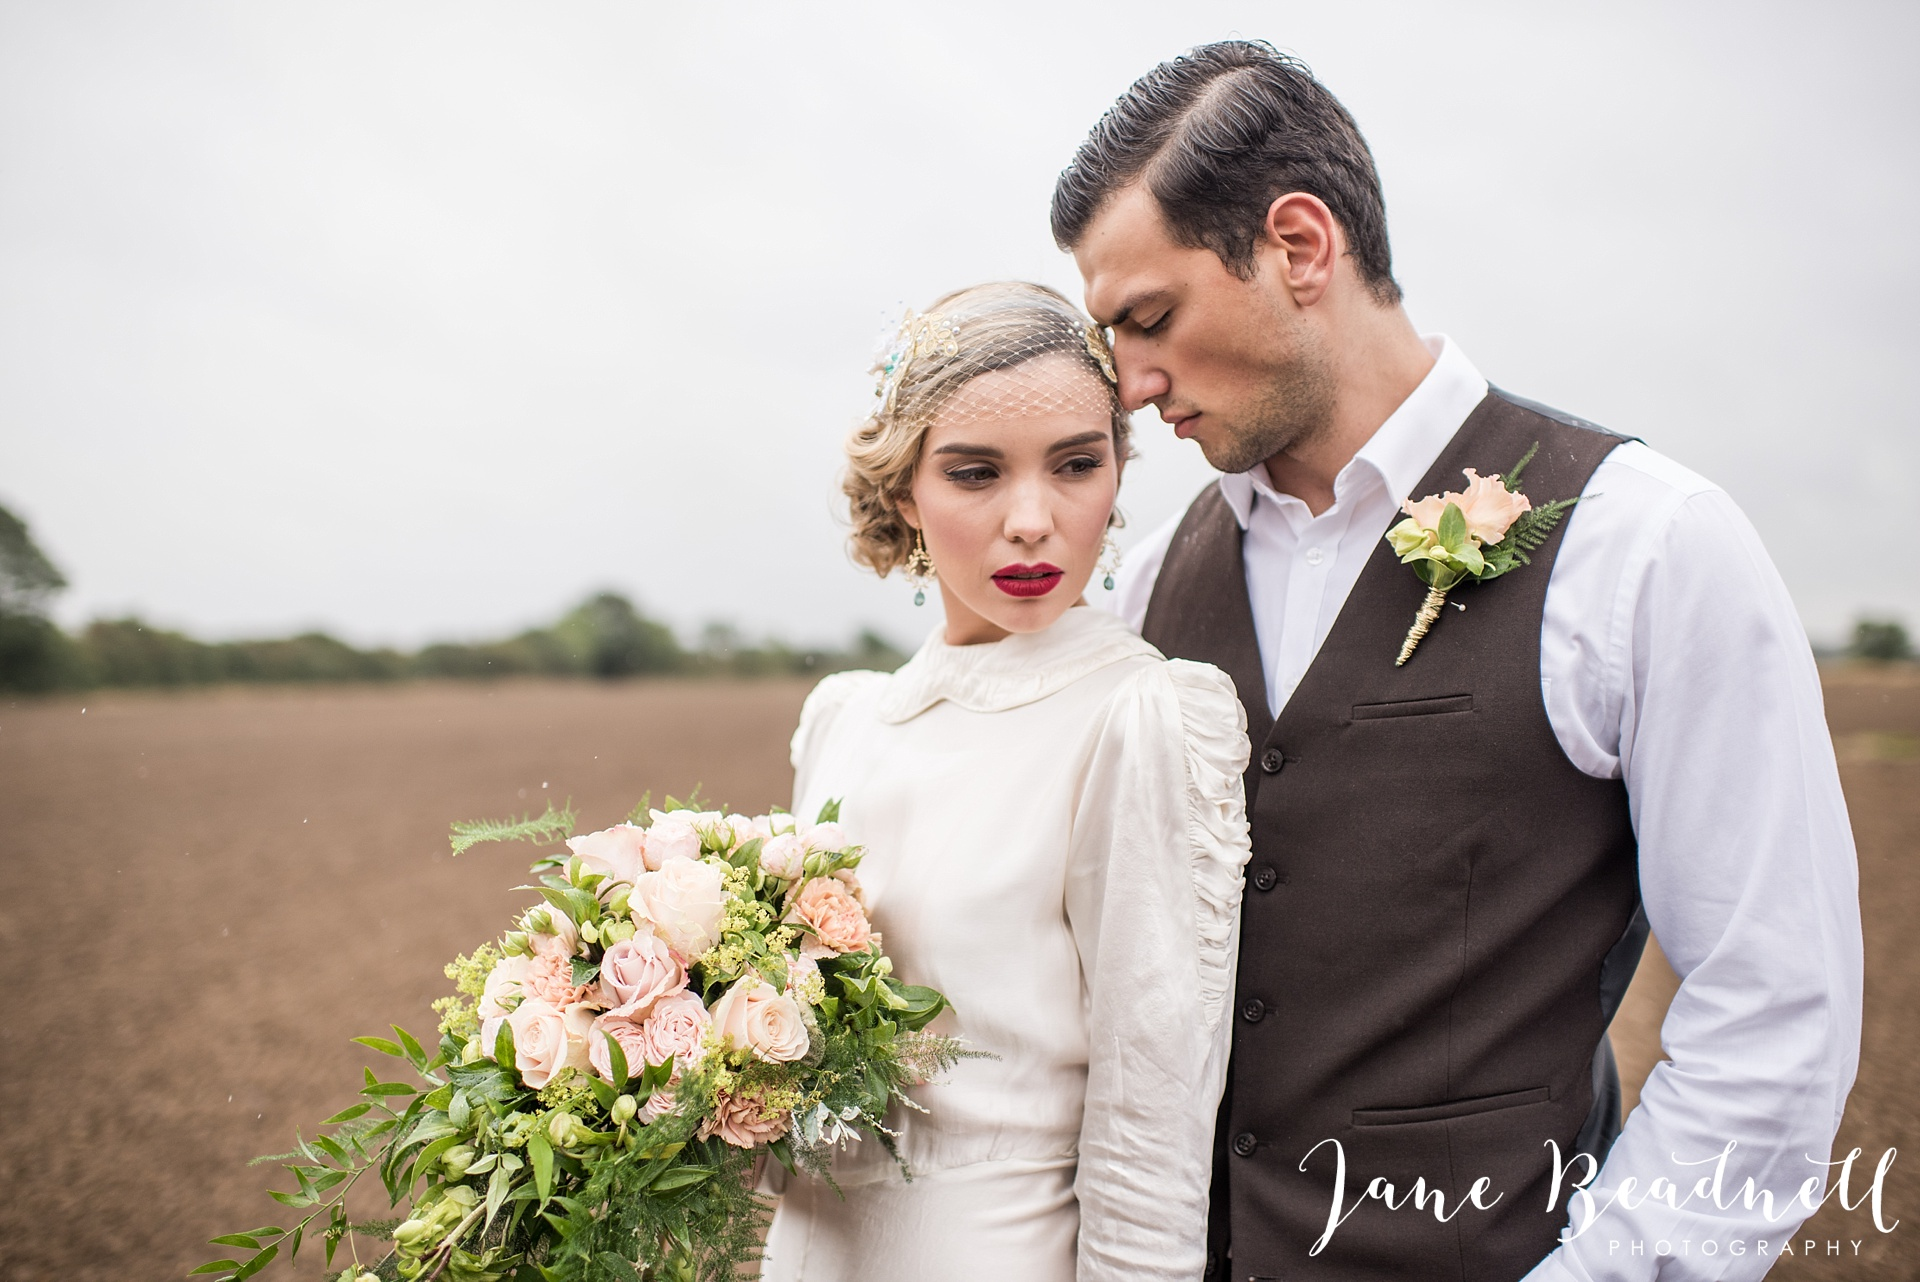 fine-art-wedding-photographer-jane-beadnell-photography-yorkshire-wedding-photographer_0057